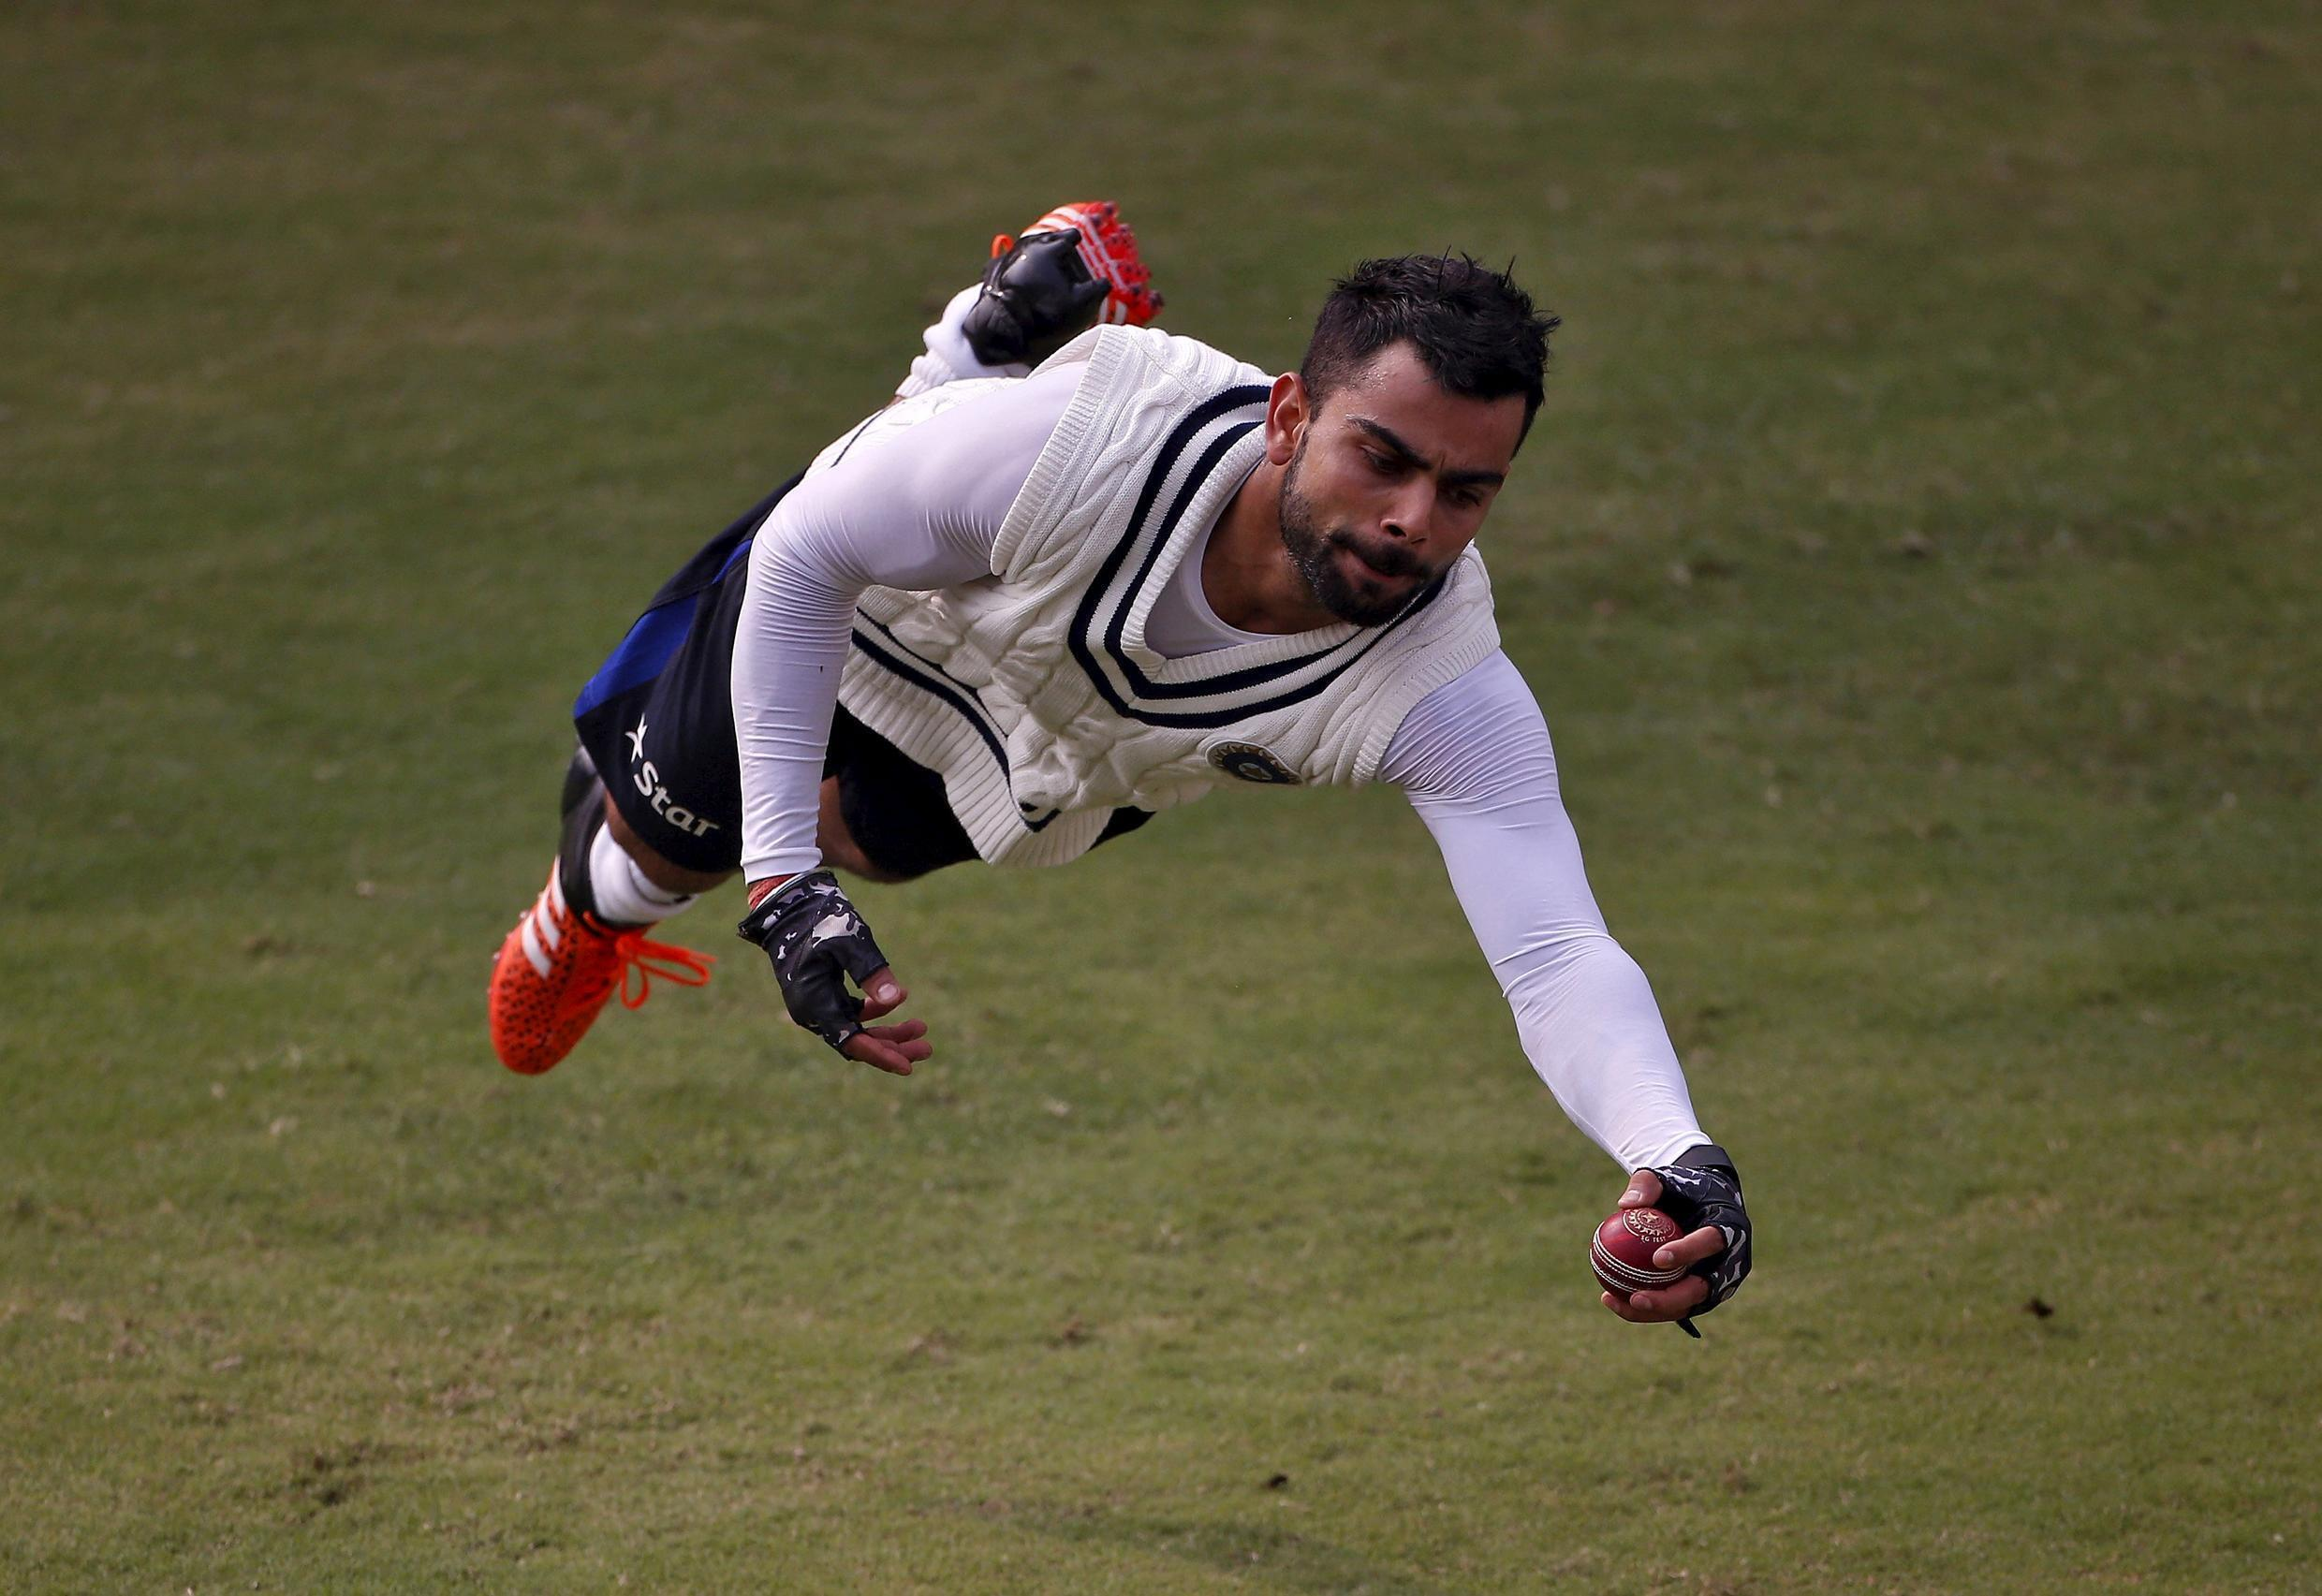 Indian cricket captain Virat Kohli takes a diving catch during a fielding practice session on the eve of the fourth test match against South Africa in New Delhi on Thursday.